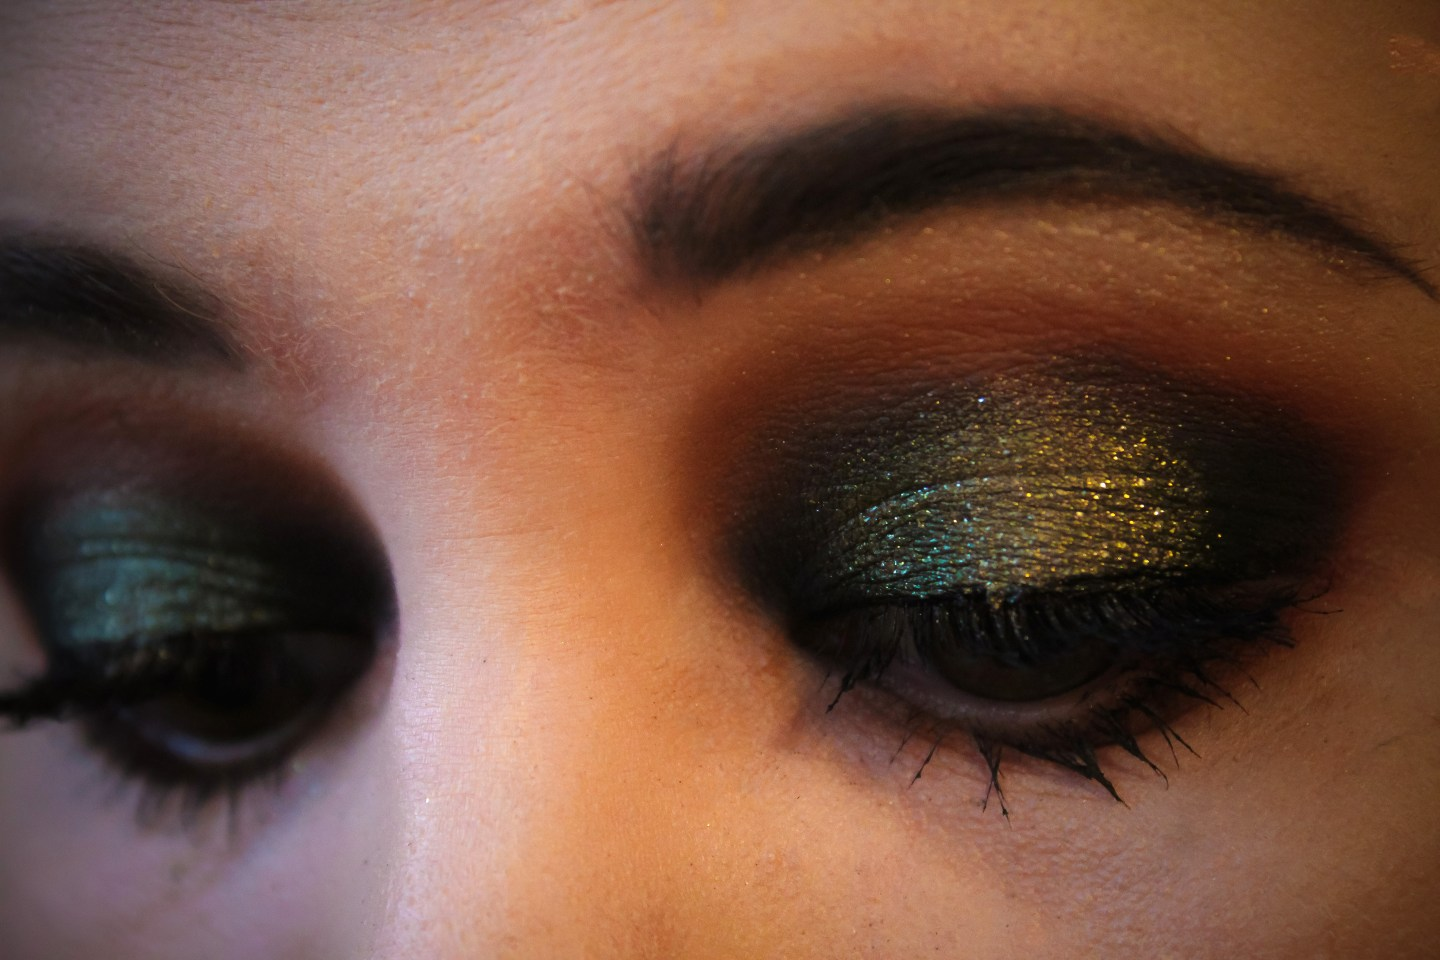 3 Looks 1 Palette: NYX Machinist Collection - Grind Palette 6